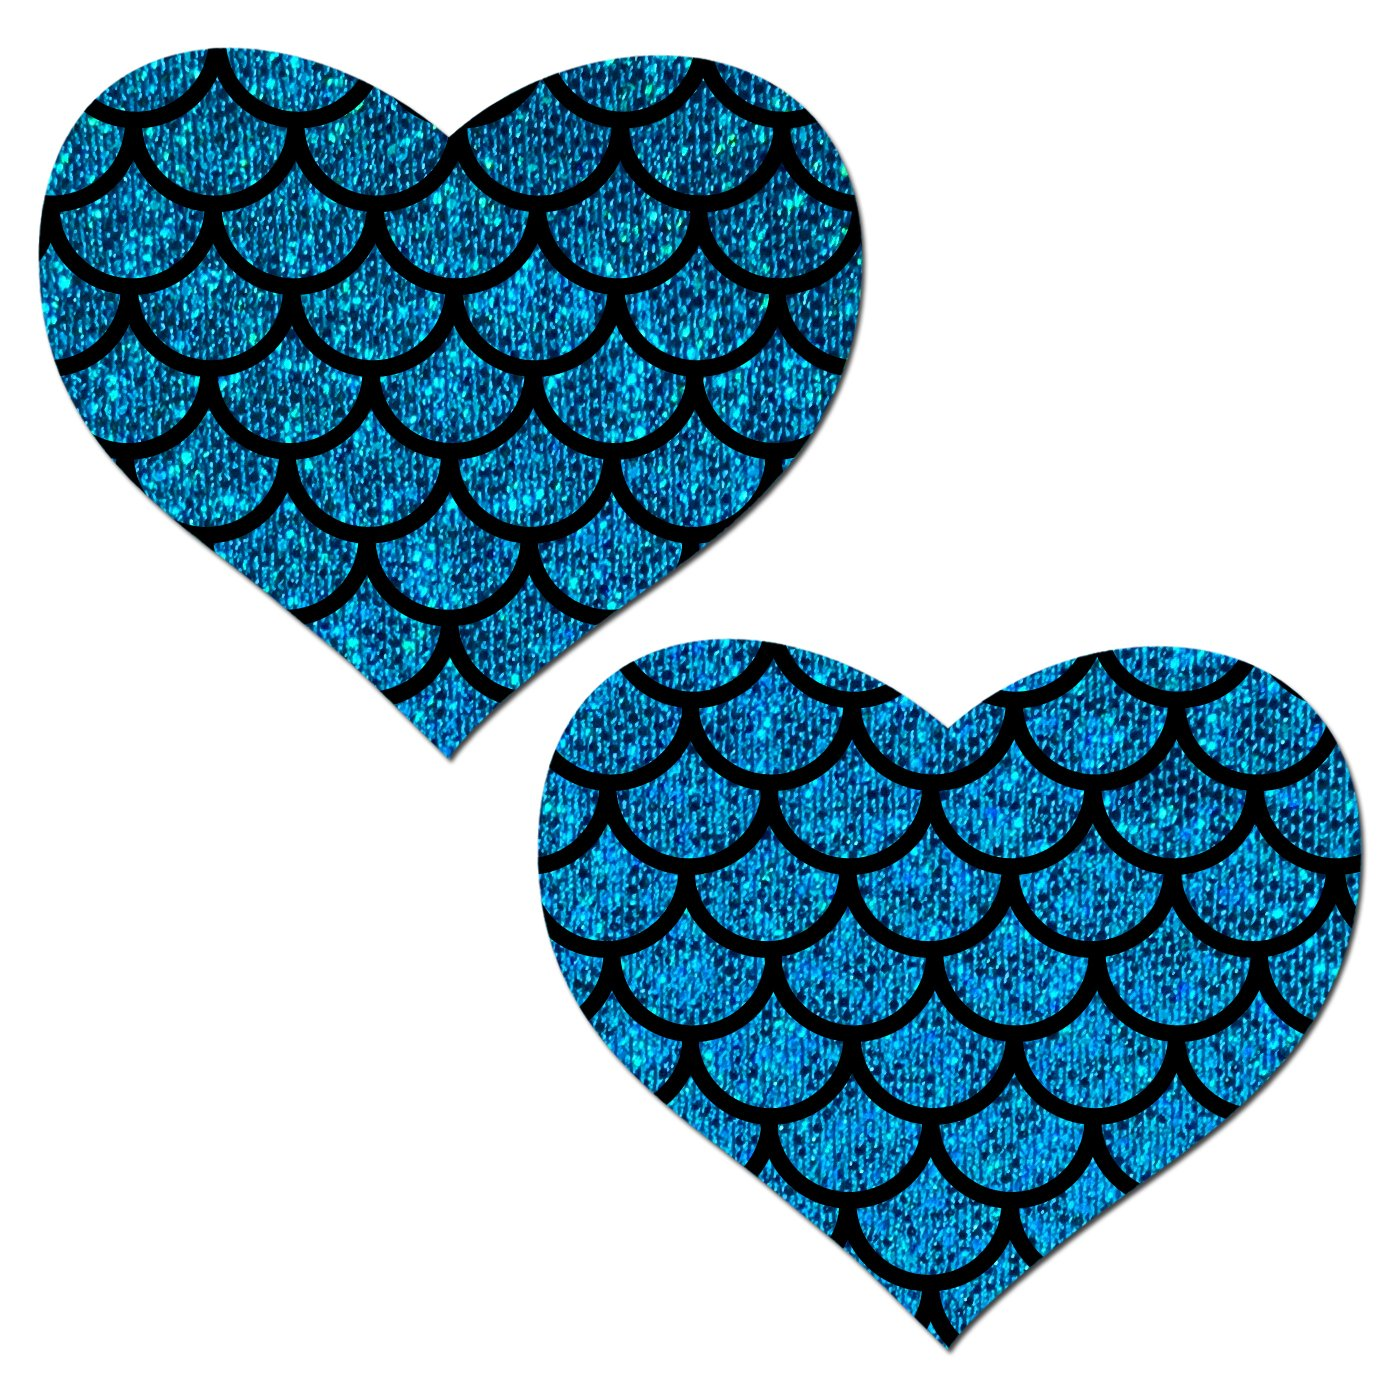 Turquoise Glitter Heart with Mermaid Scales overlay Nipple Pasties by Pastease® o/s HRT-GLT-TQ-SBK